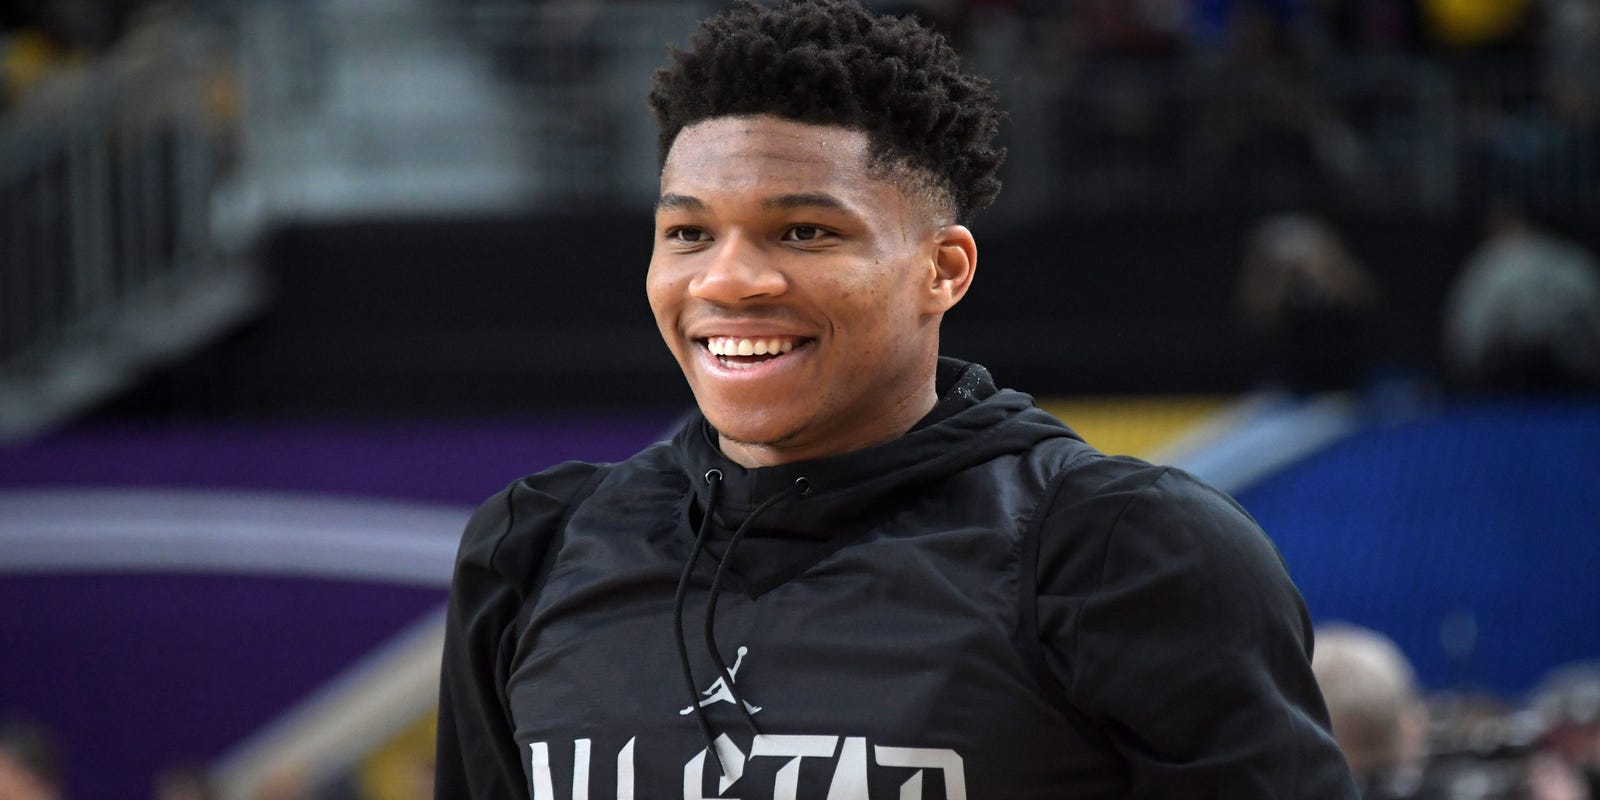 Giannis Antetokounmpo Has Gone From Rising Star To Household Name